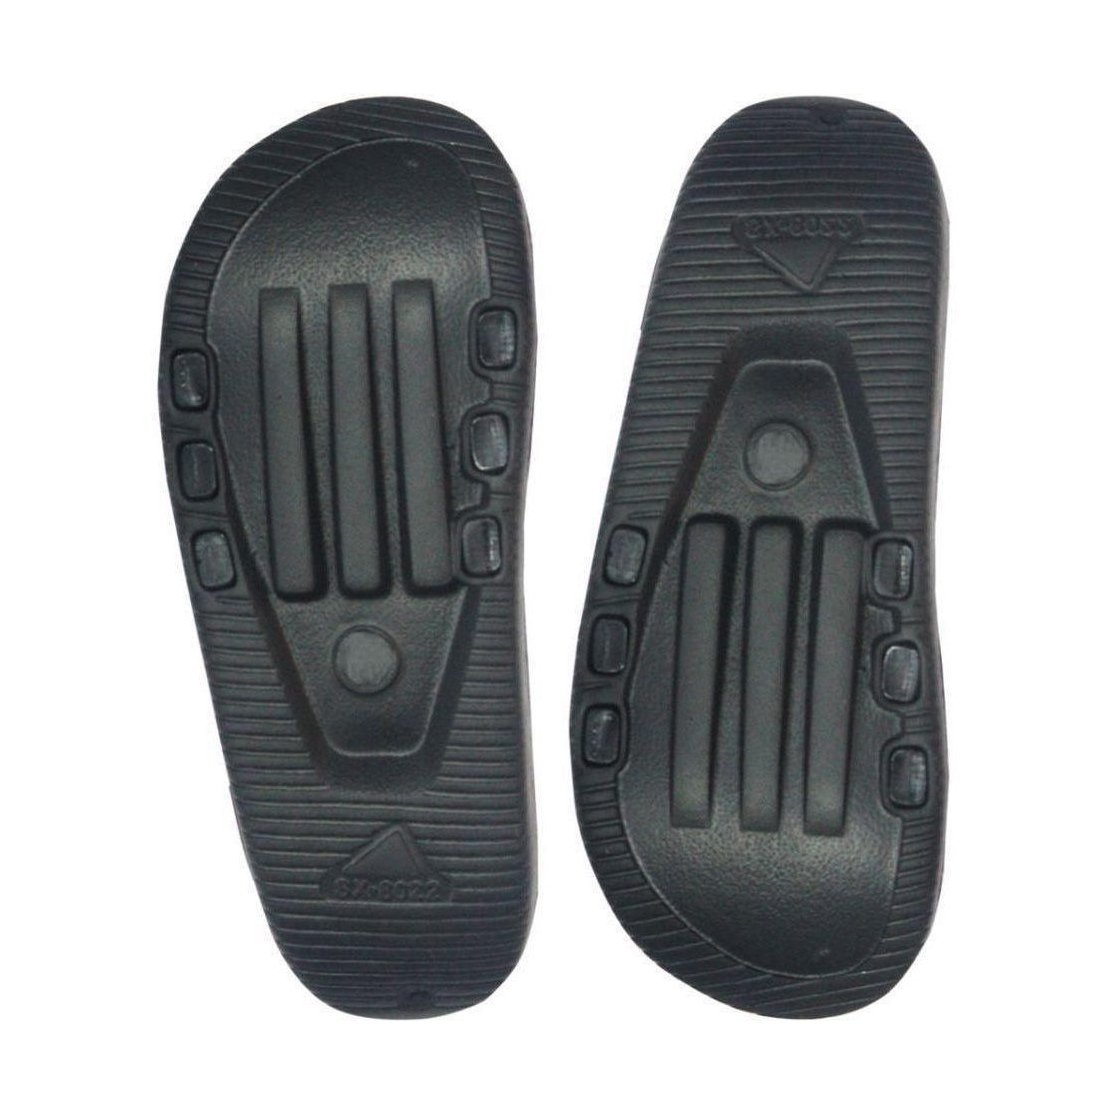 dd39fc0d564df INF Men s Rubber Slider Flip Flop and House Slippers  Buy Online at Low  Prices in India - Amazon.in